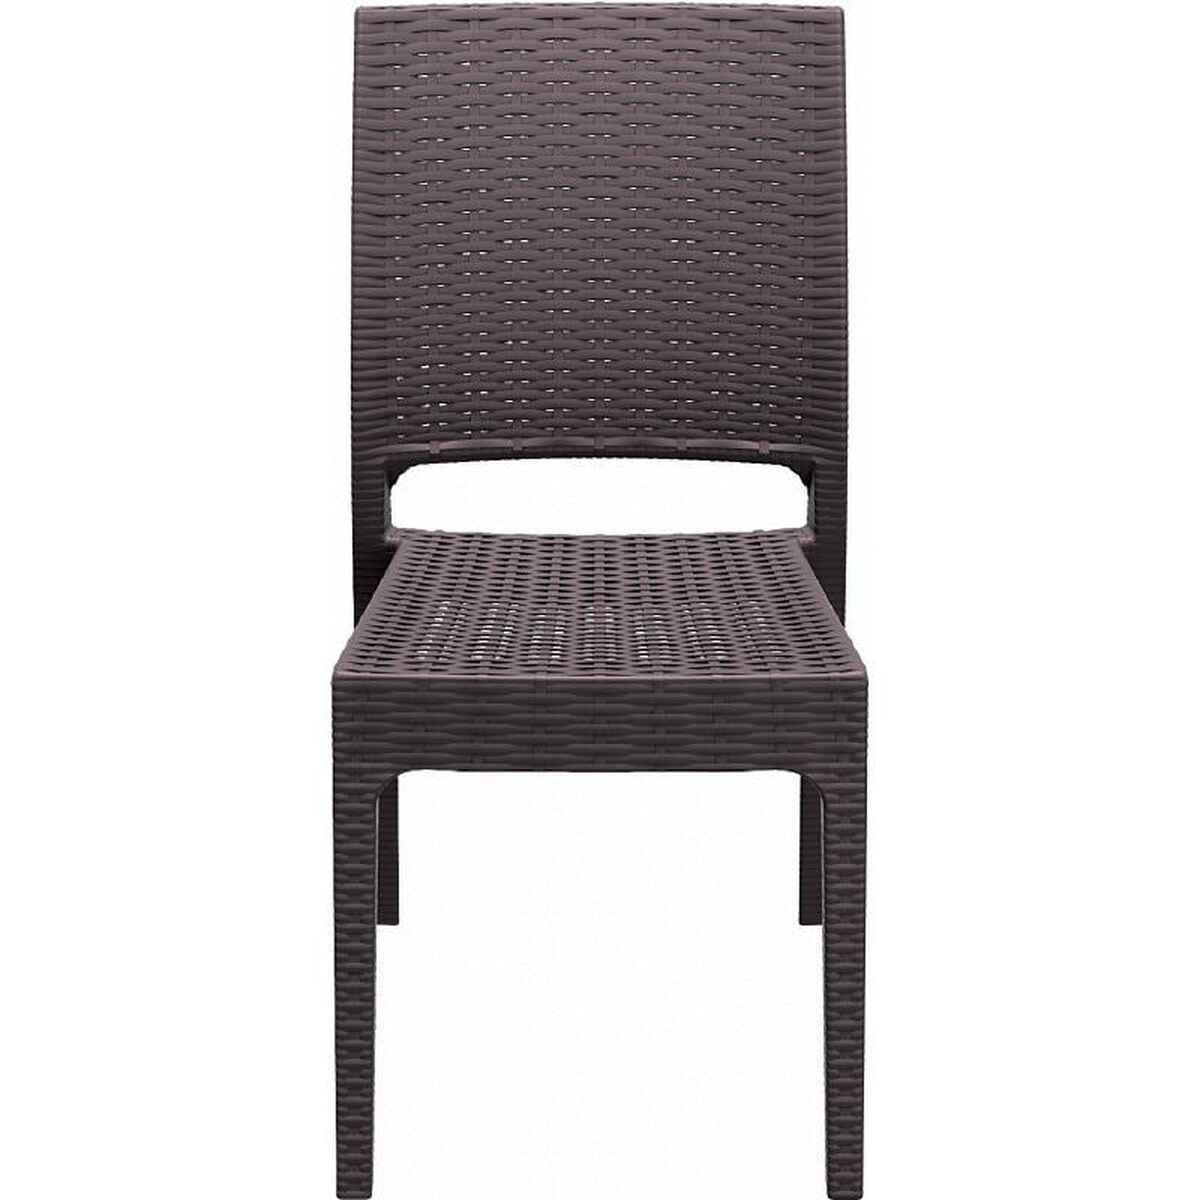 Brown Stacking Dining Chair Isp816 Br